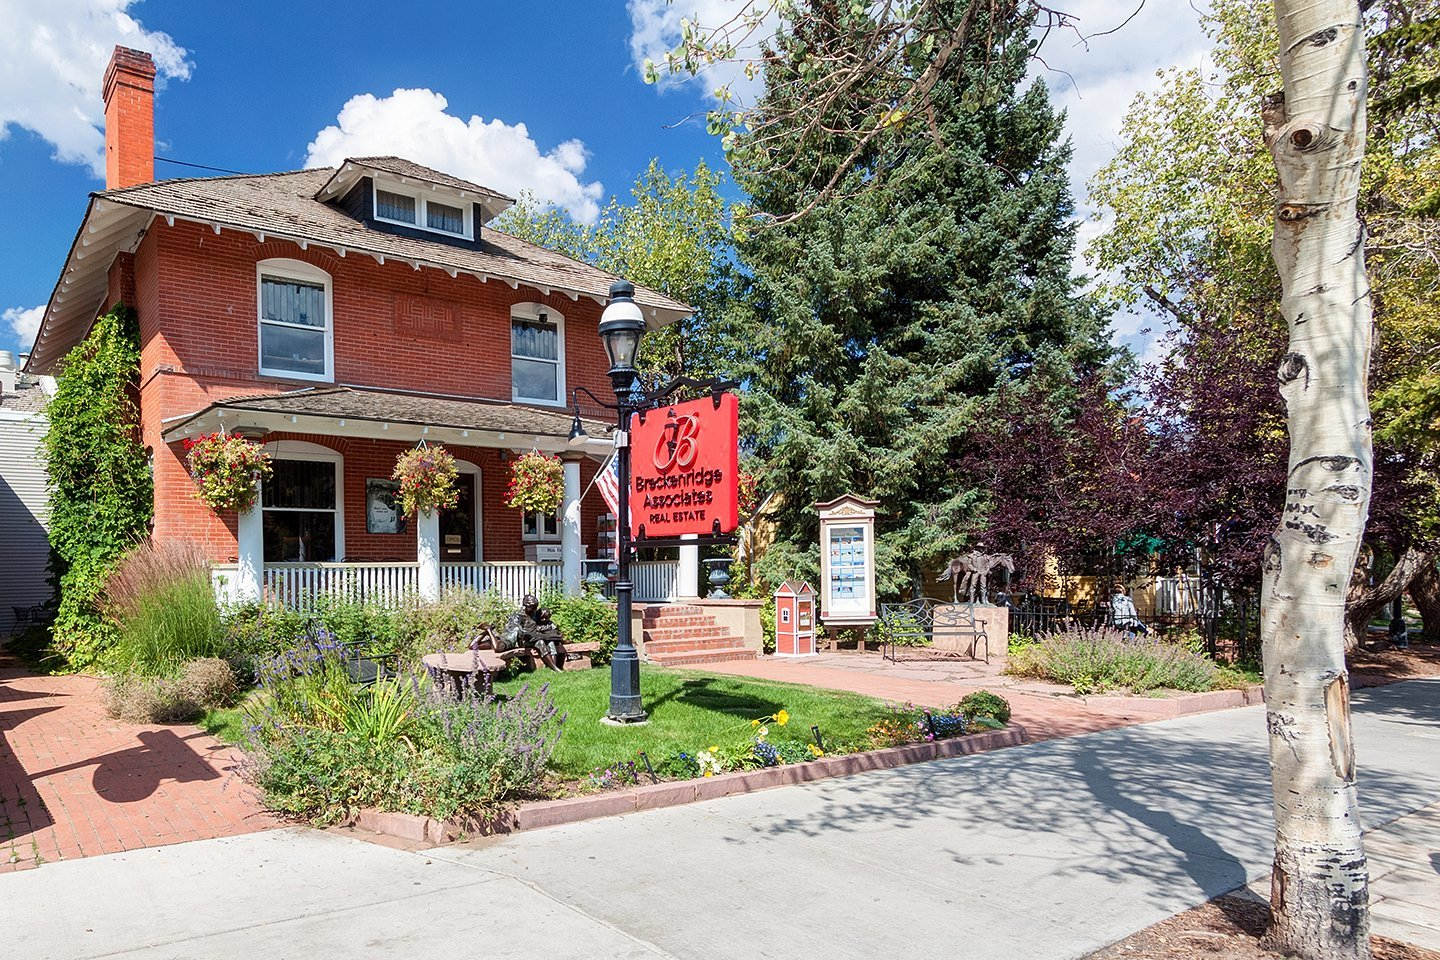 Breckenridge Associates Real Estate, 229 S. Main St, Breckenridge, Colorado